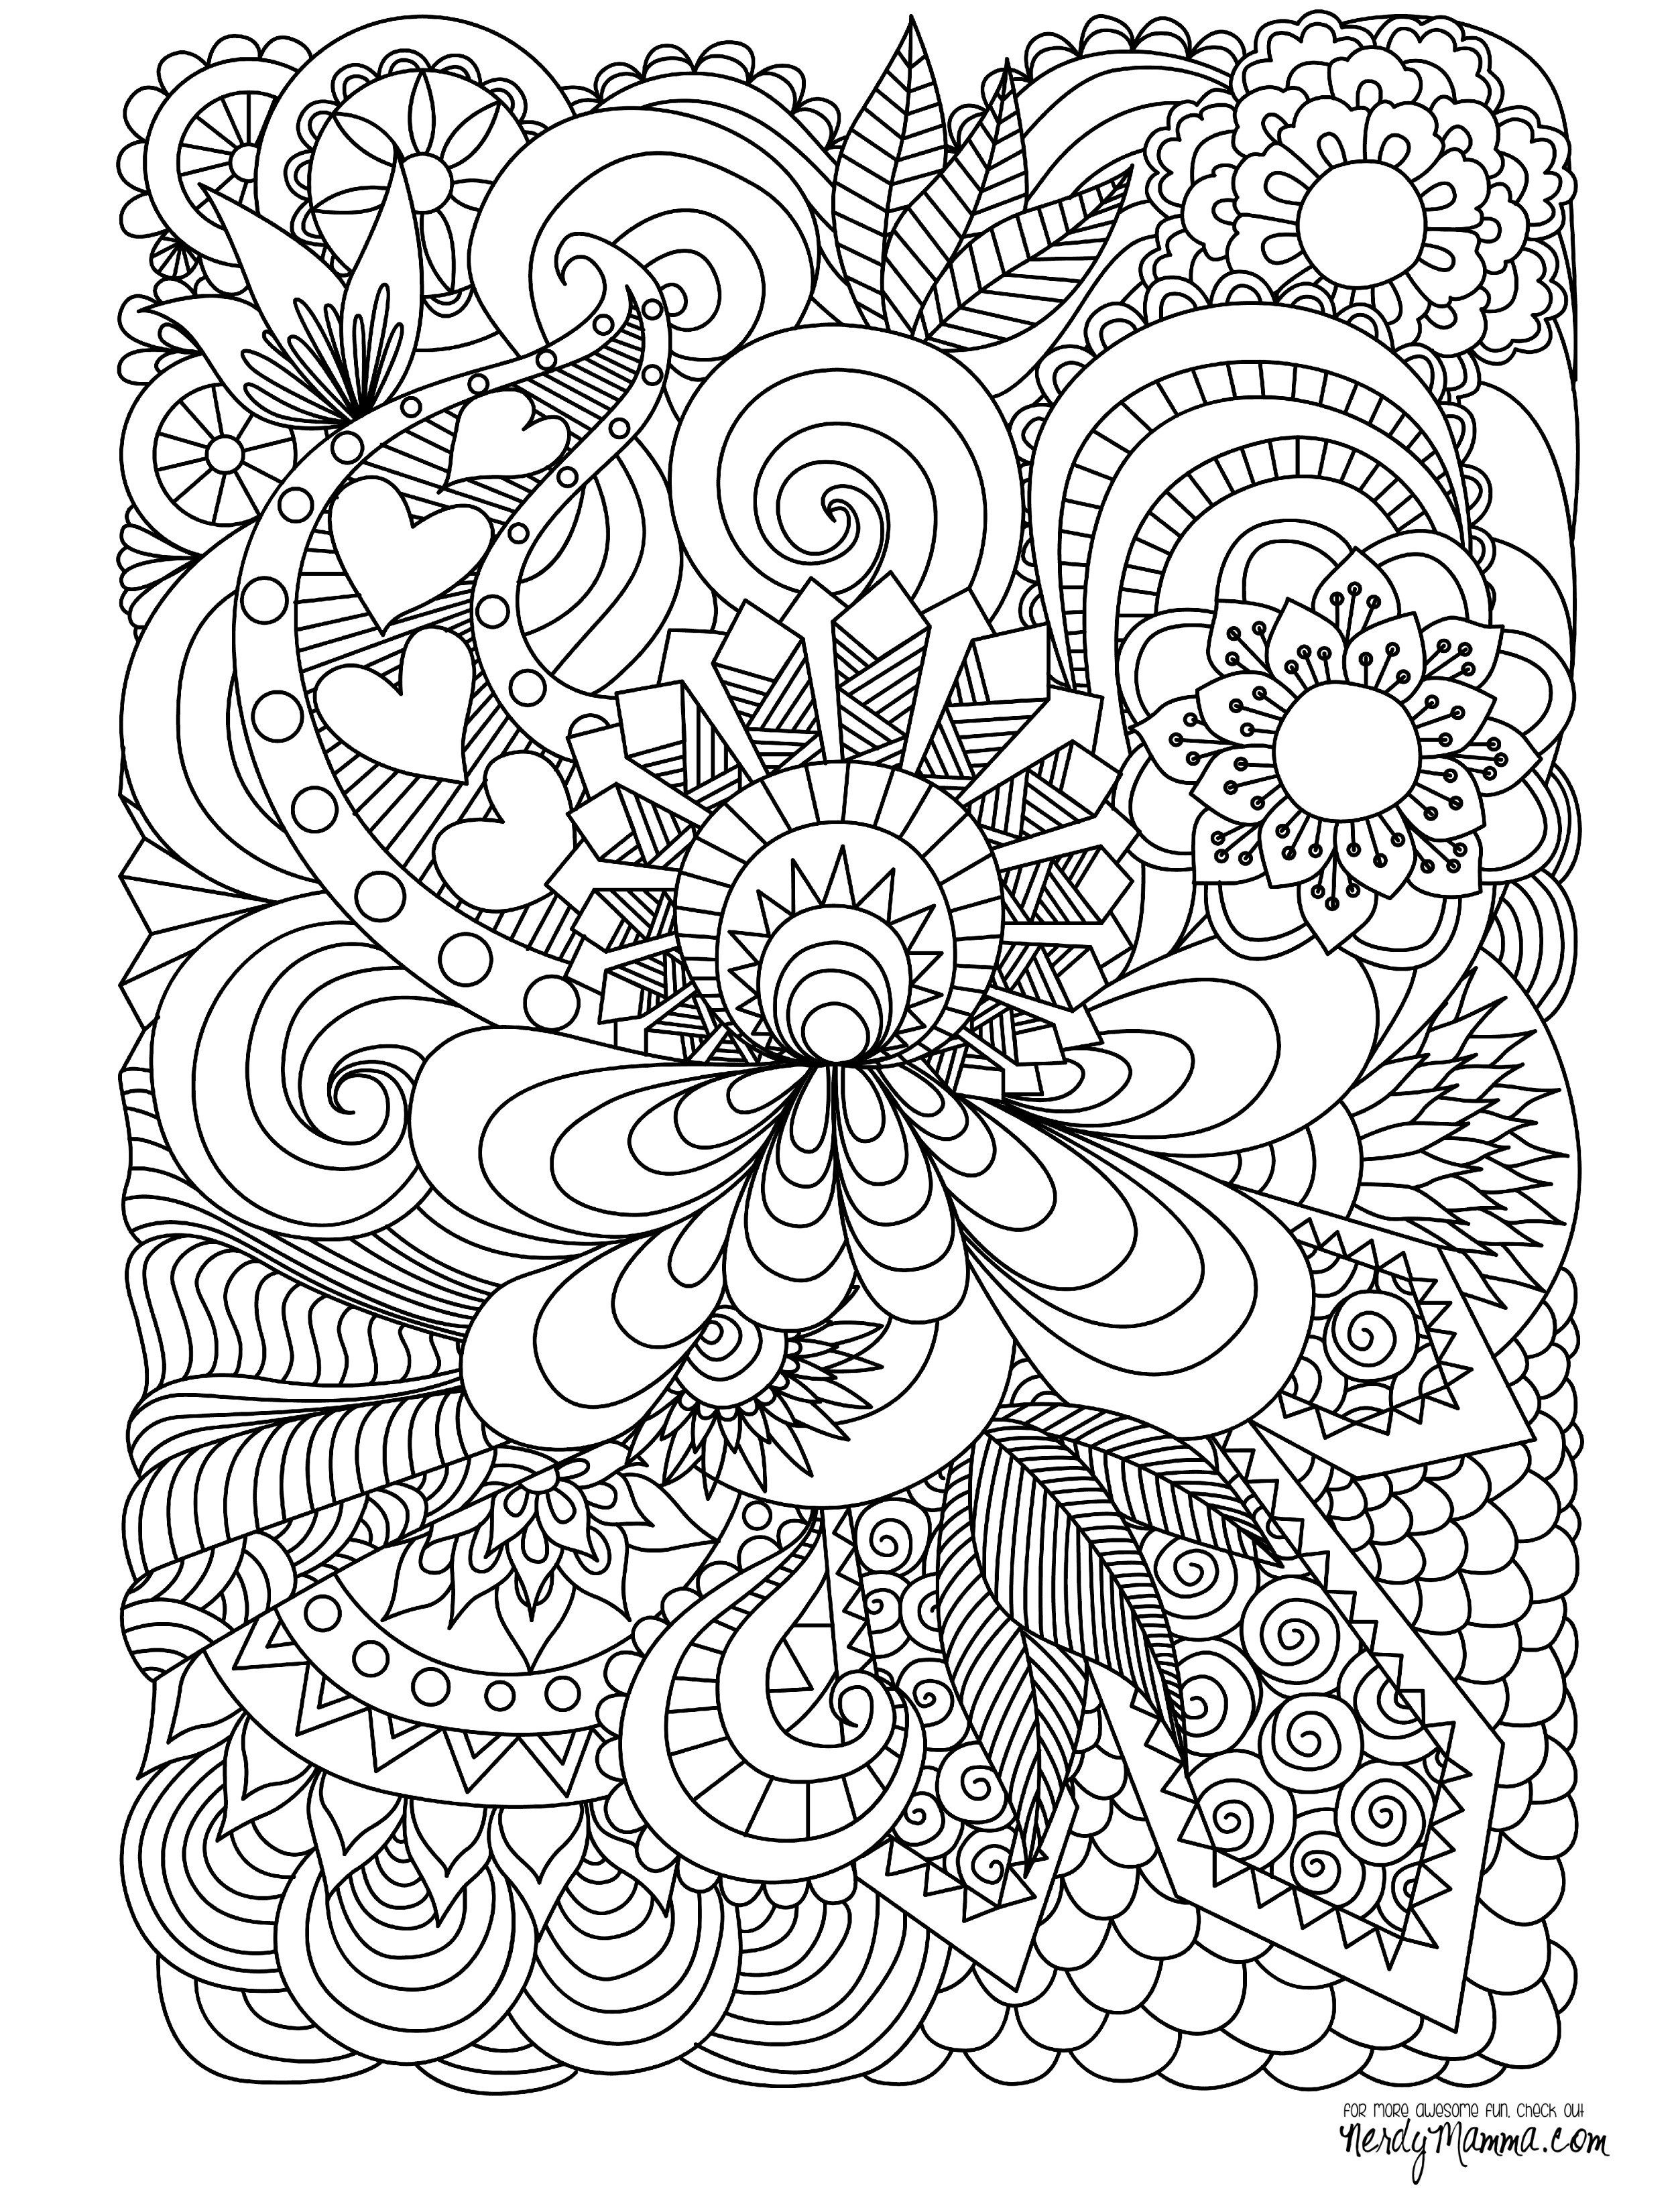 Abstract Doodle Coloring pages colouring adult detailed ... | free printable coloring pages for adults advanced